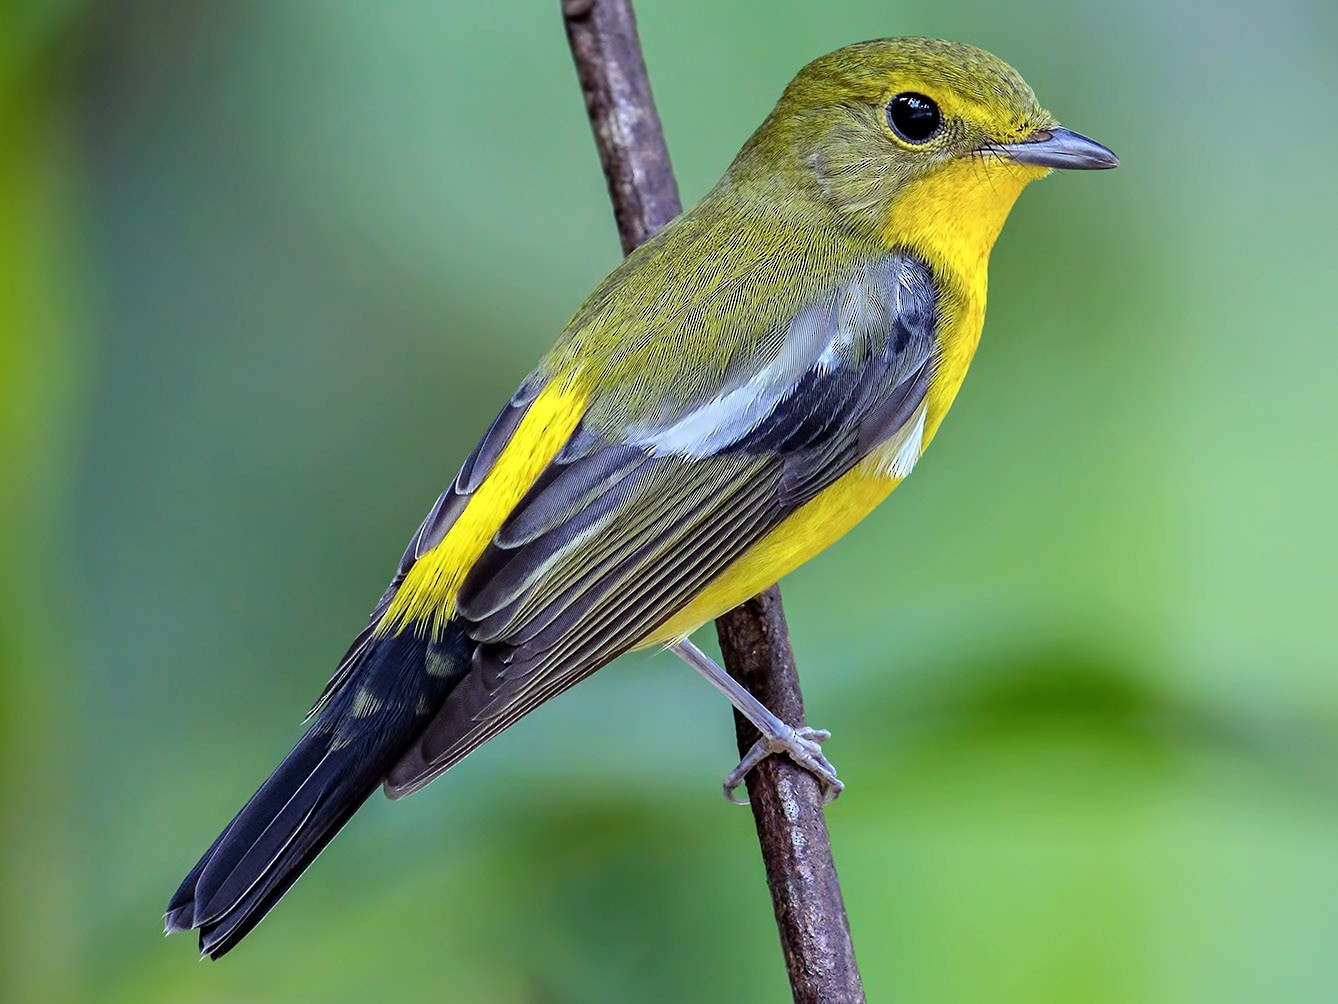 Green-backed Flycatcher - Zhong Ying Koay